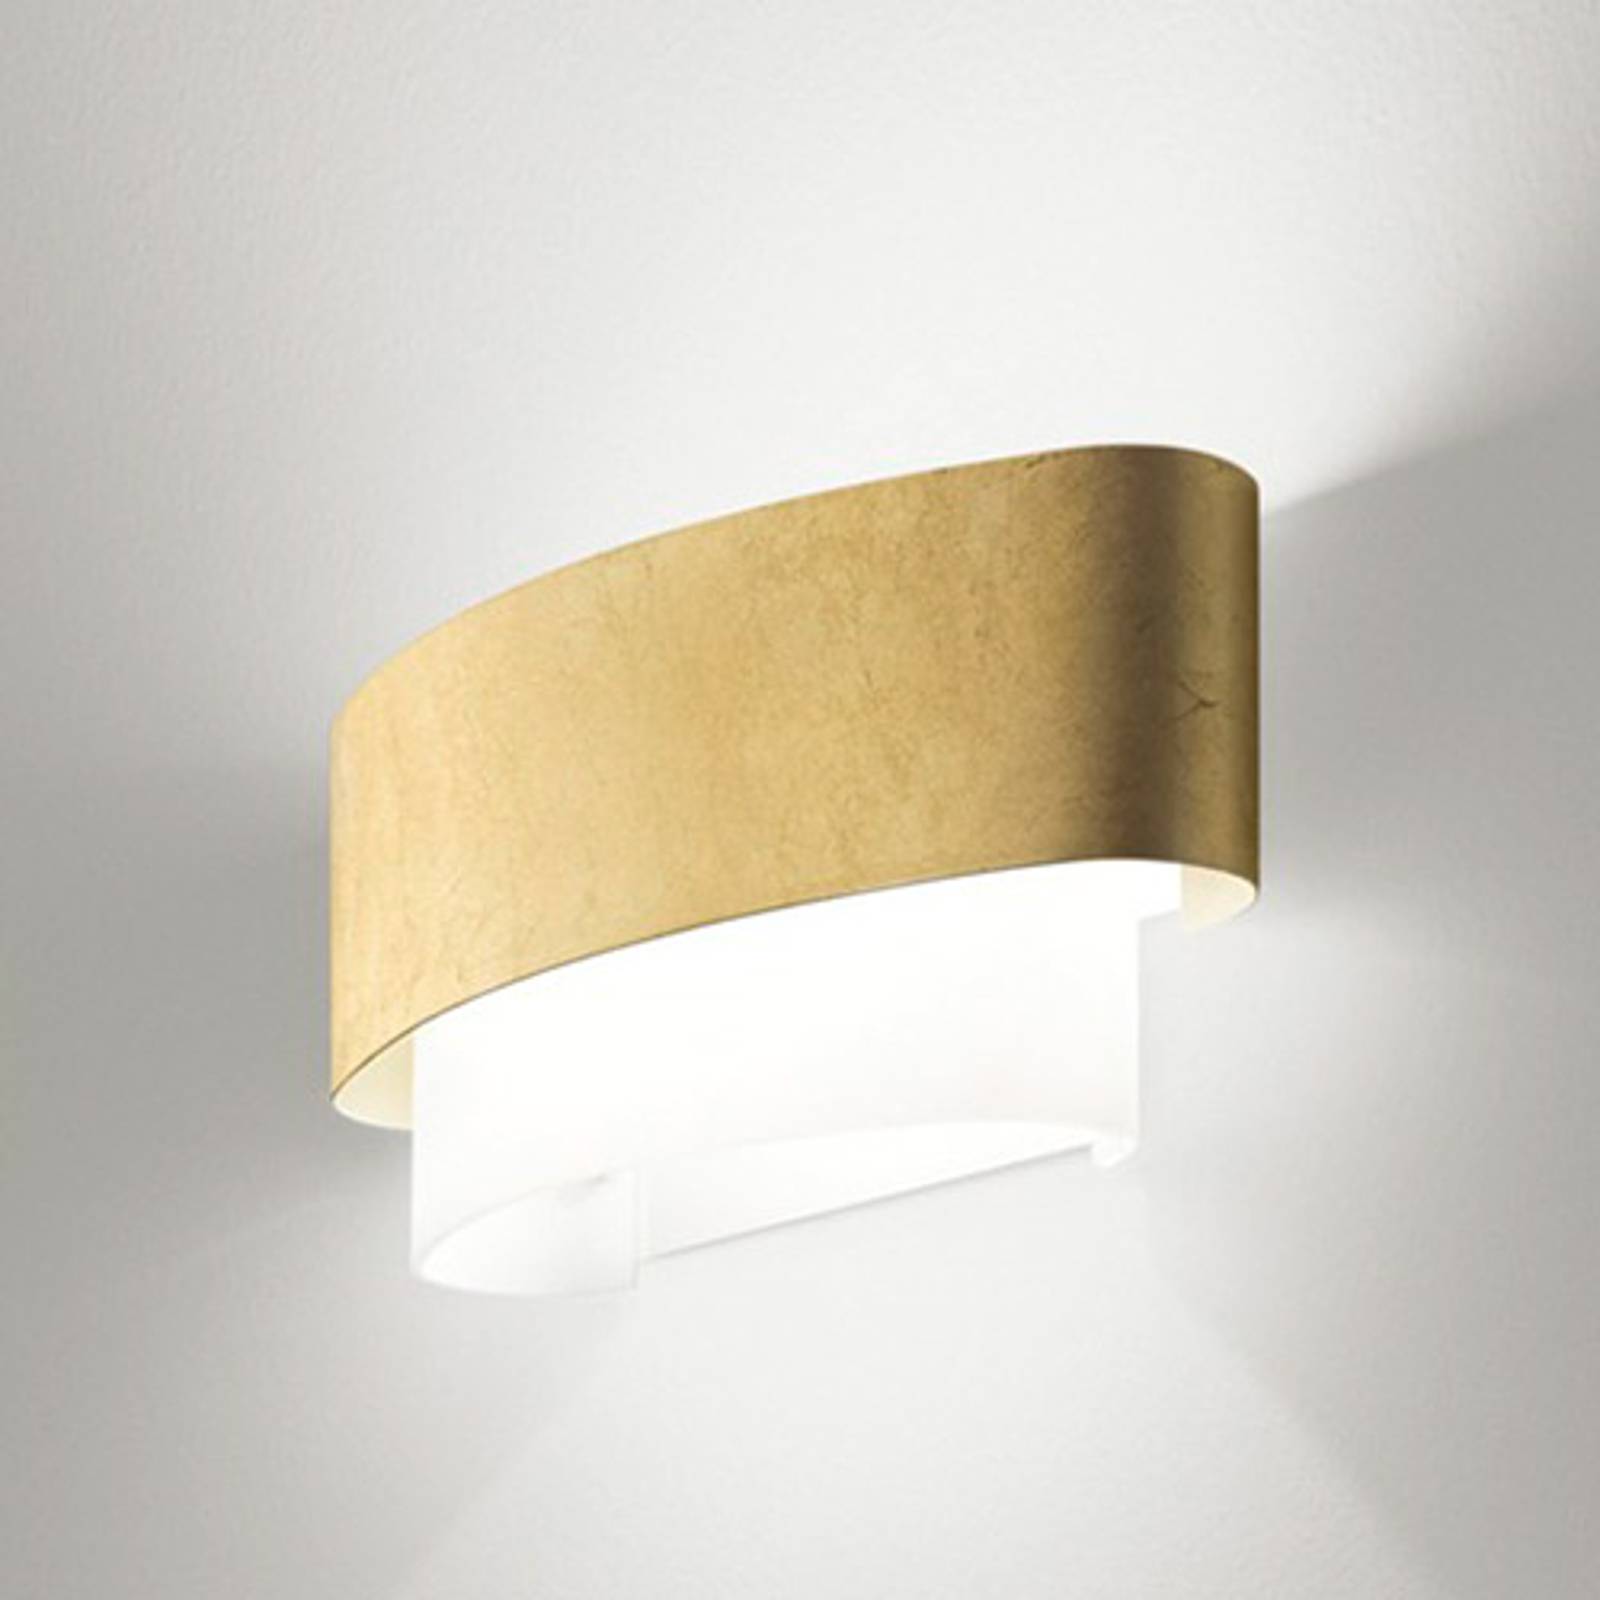 In a gold leaf look - Matrioska wall light_6042268_1